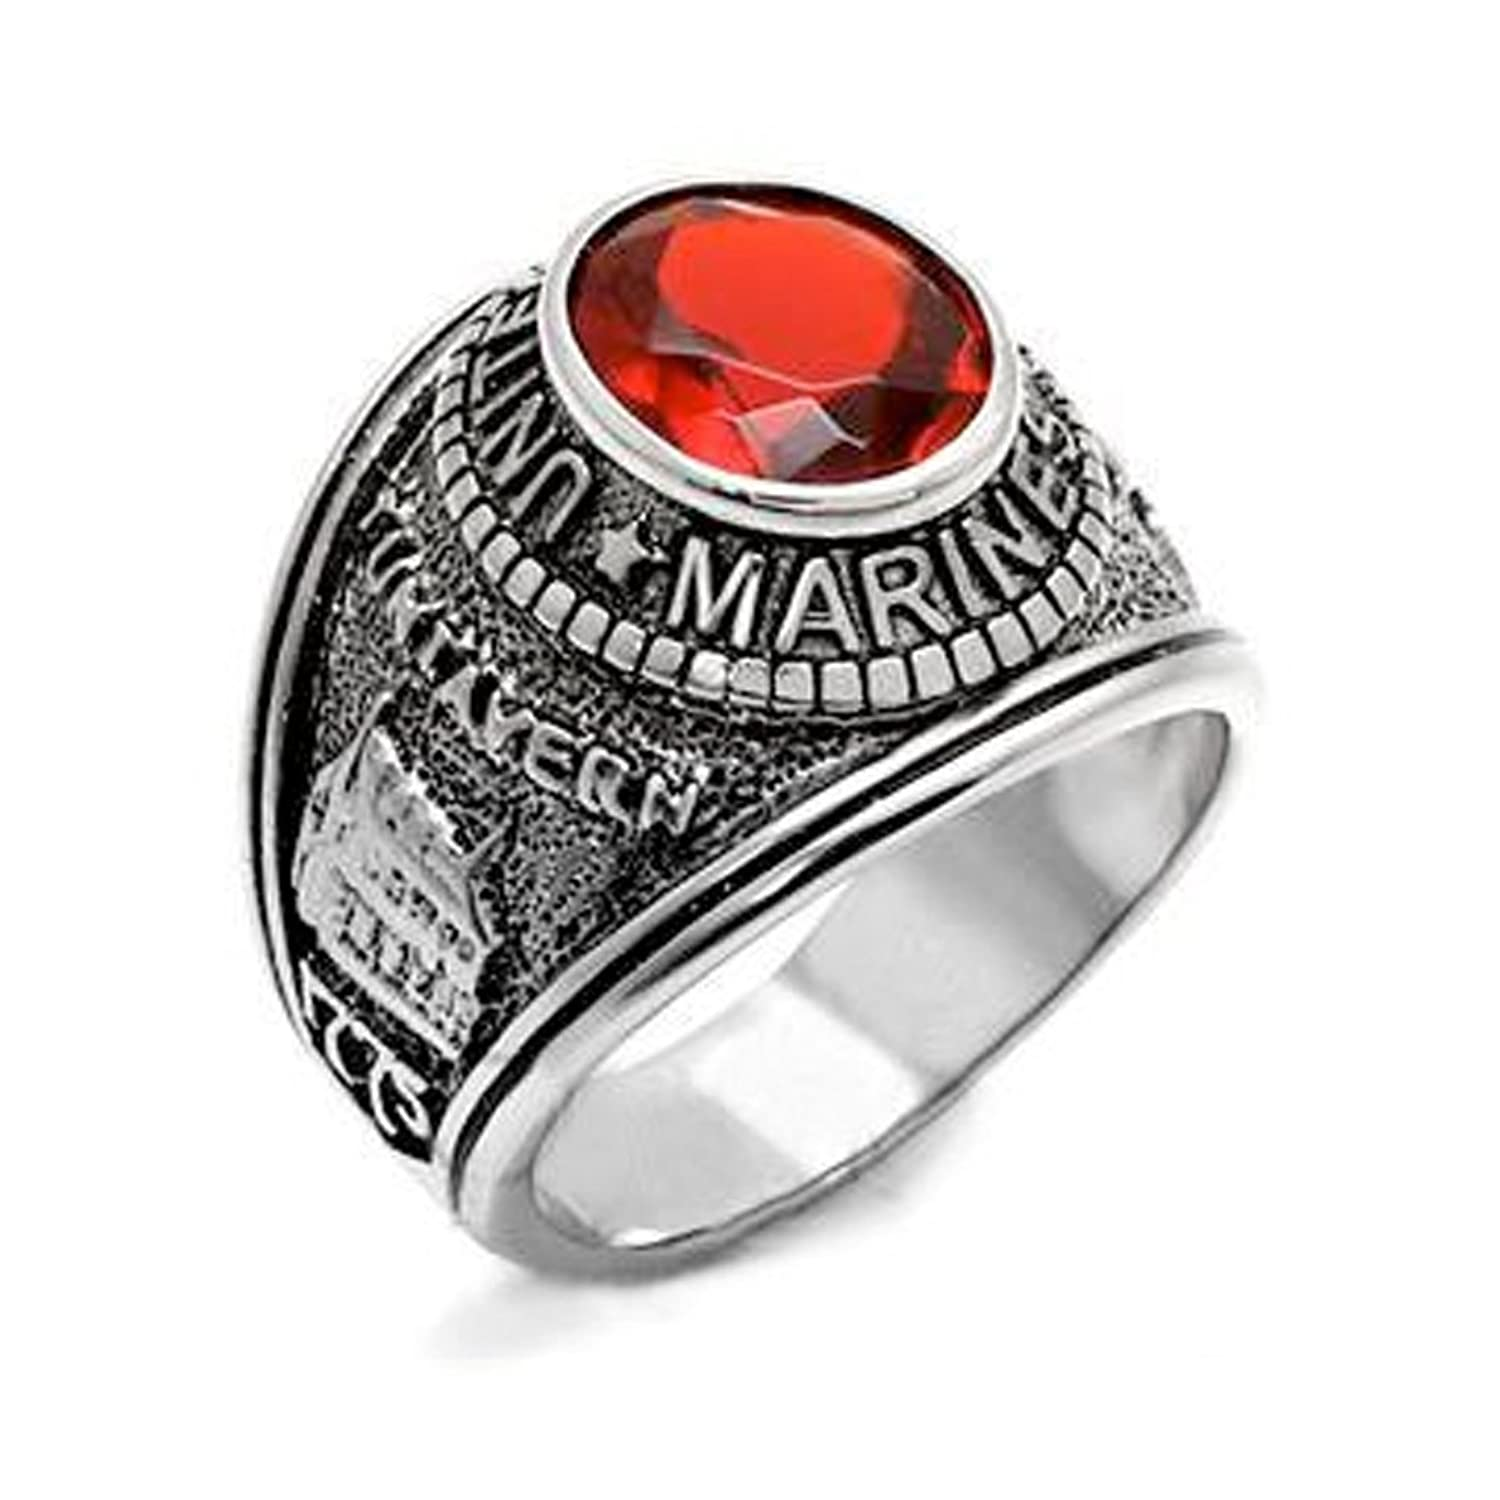 find military cheap rings collection copy of online